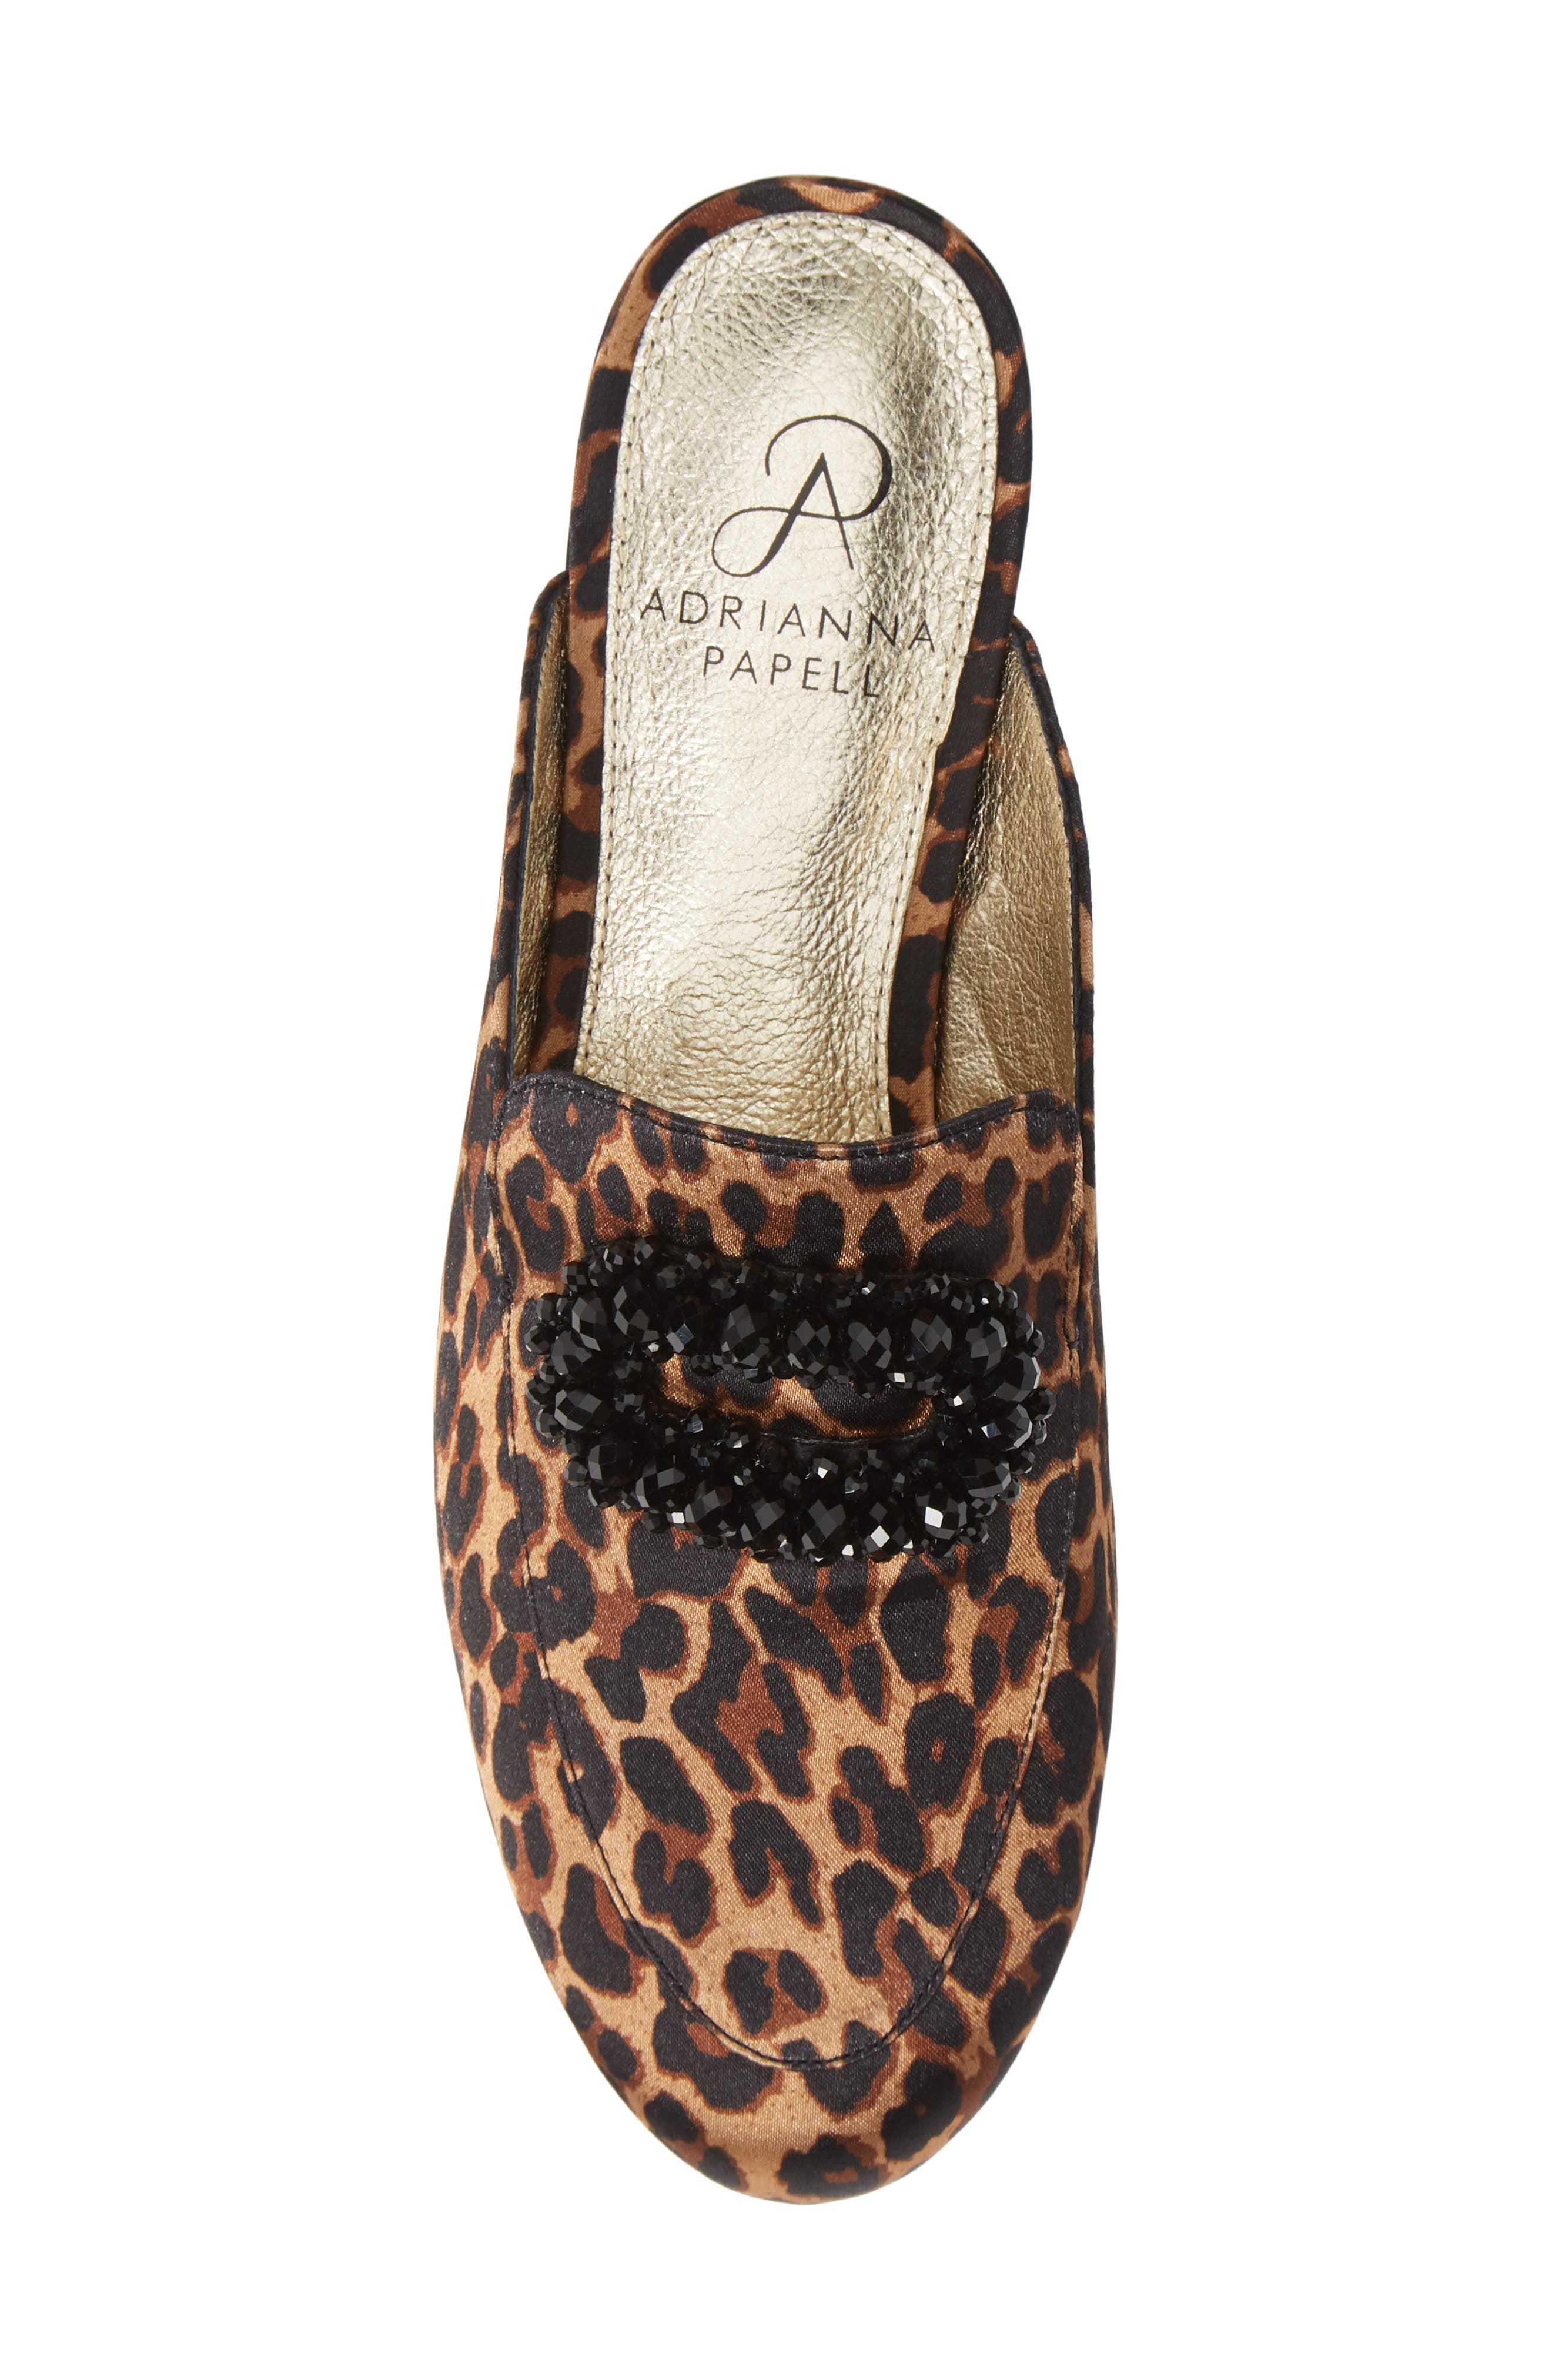 ADRIANNA PAPELL,                             Becky Embellished Mule,                             Alternate thumbnail 5, color,                             LEOPARD